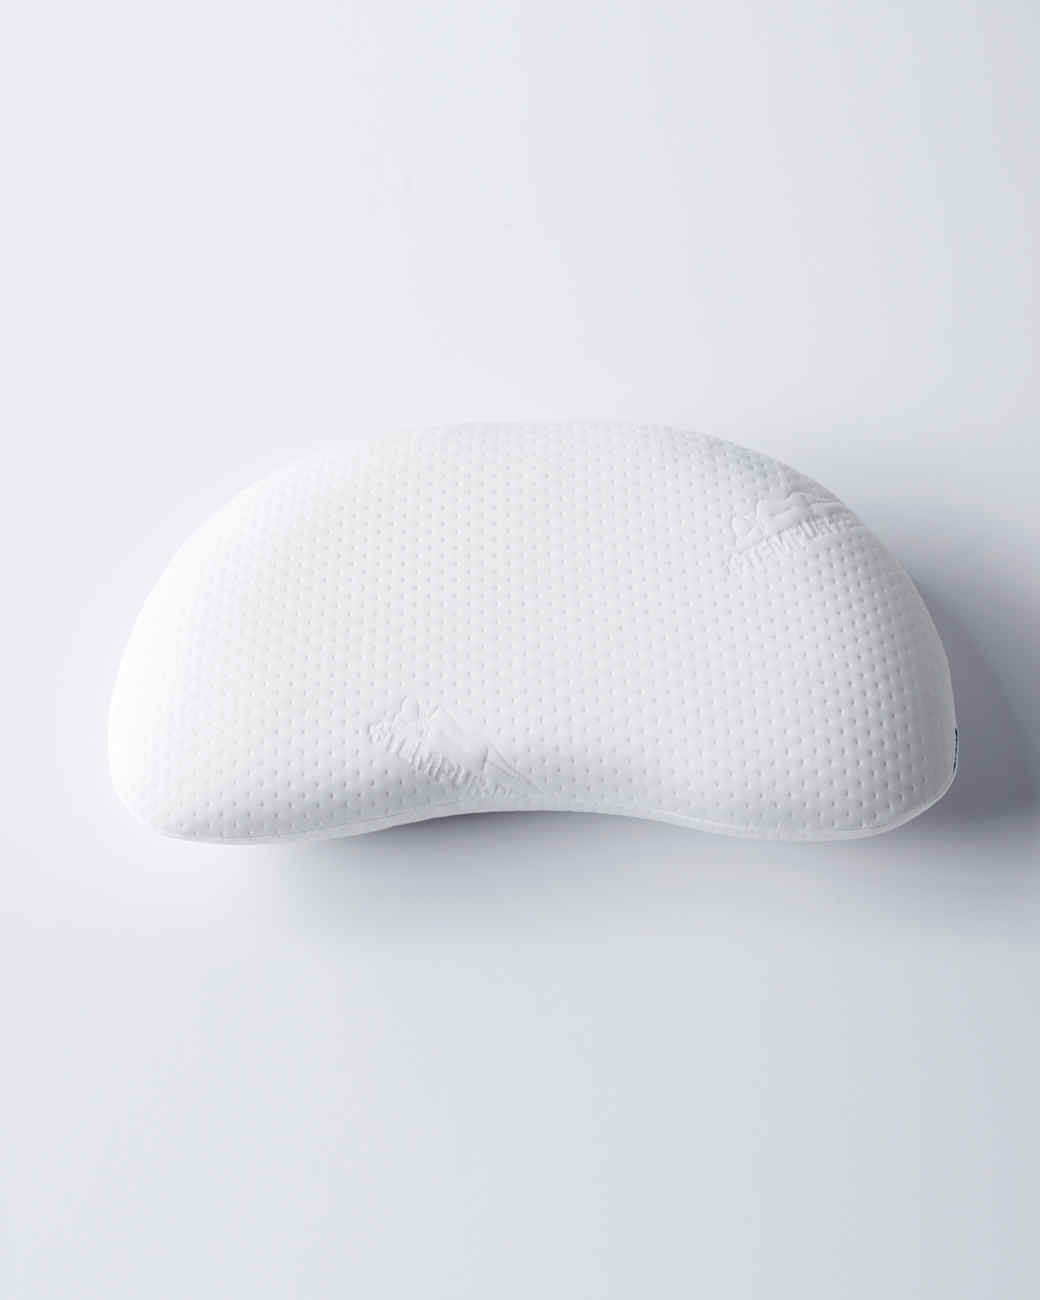 memory-foam-pillow-2-d111310-0914.jpg